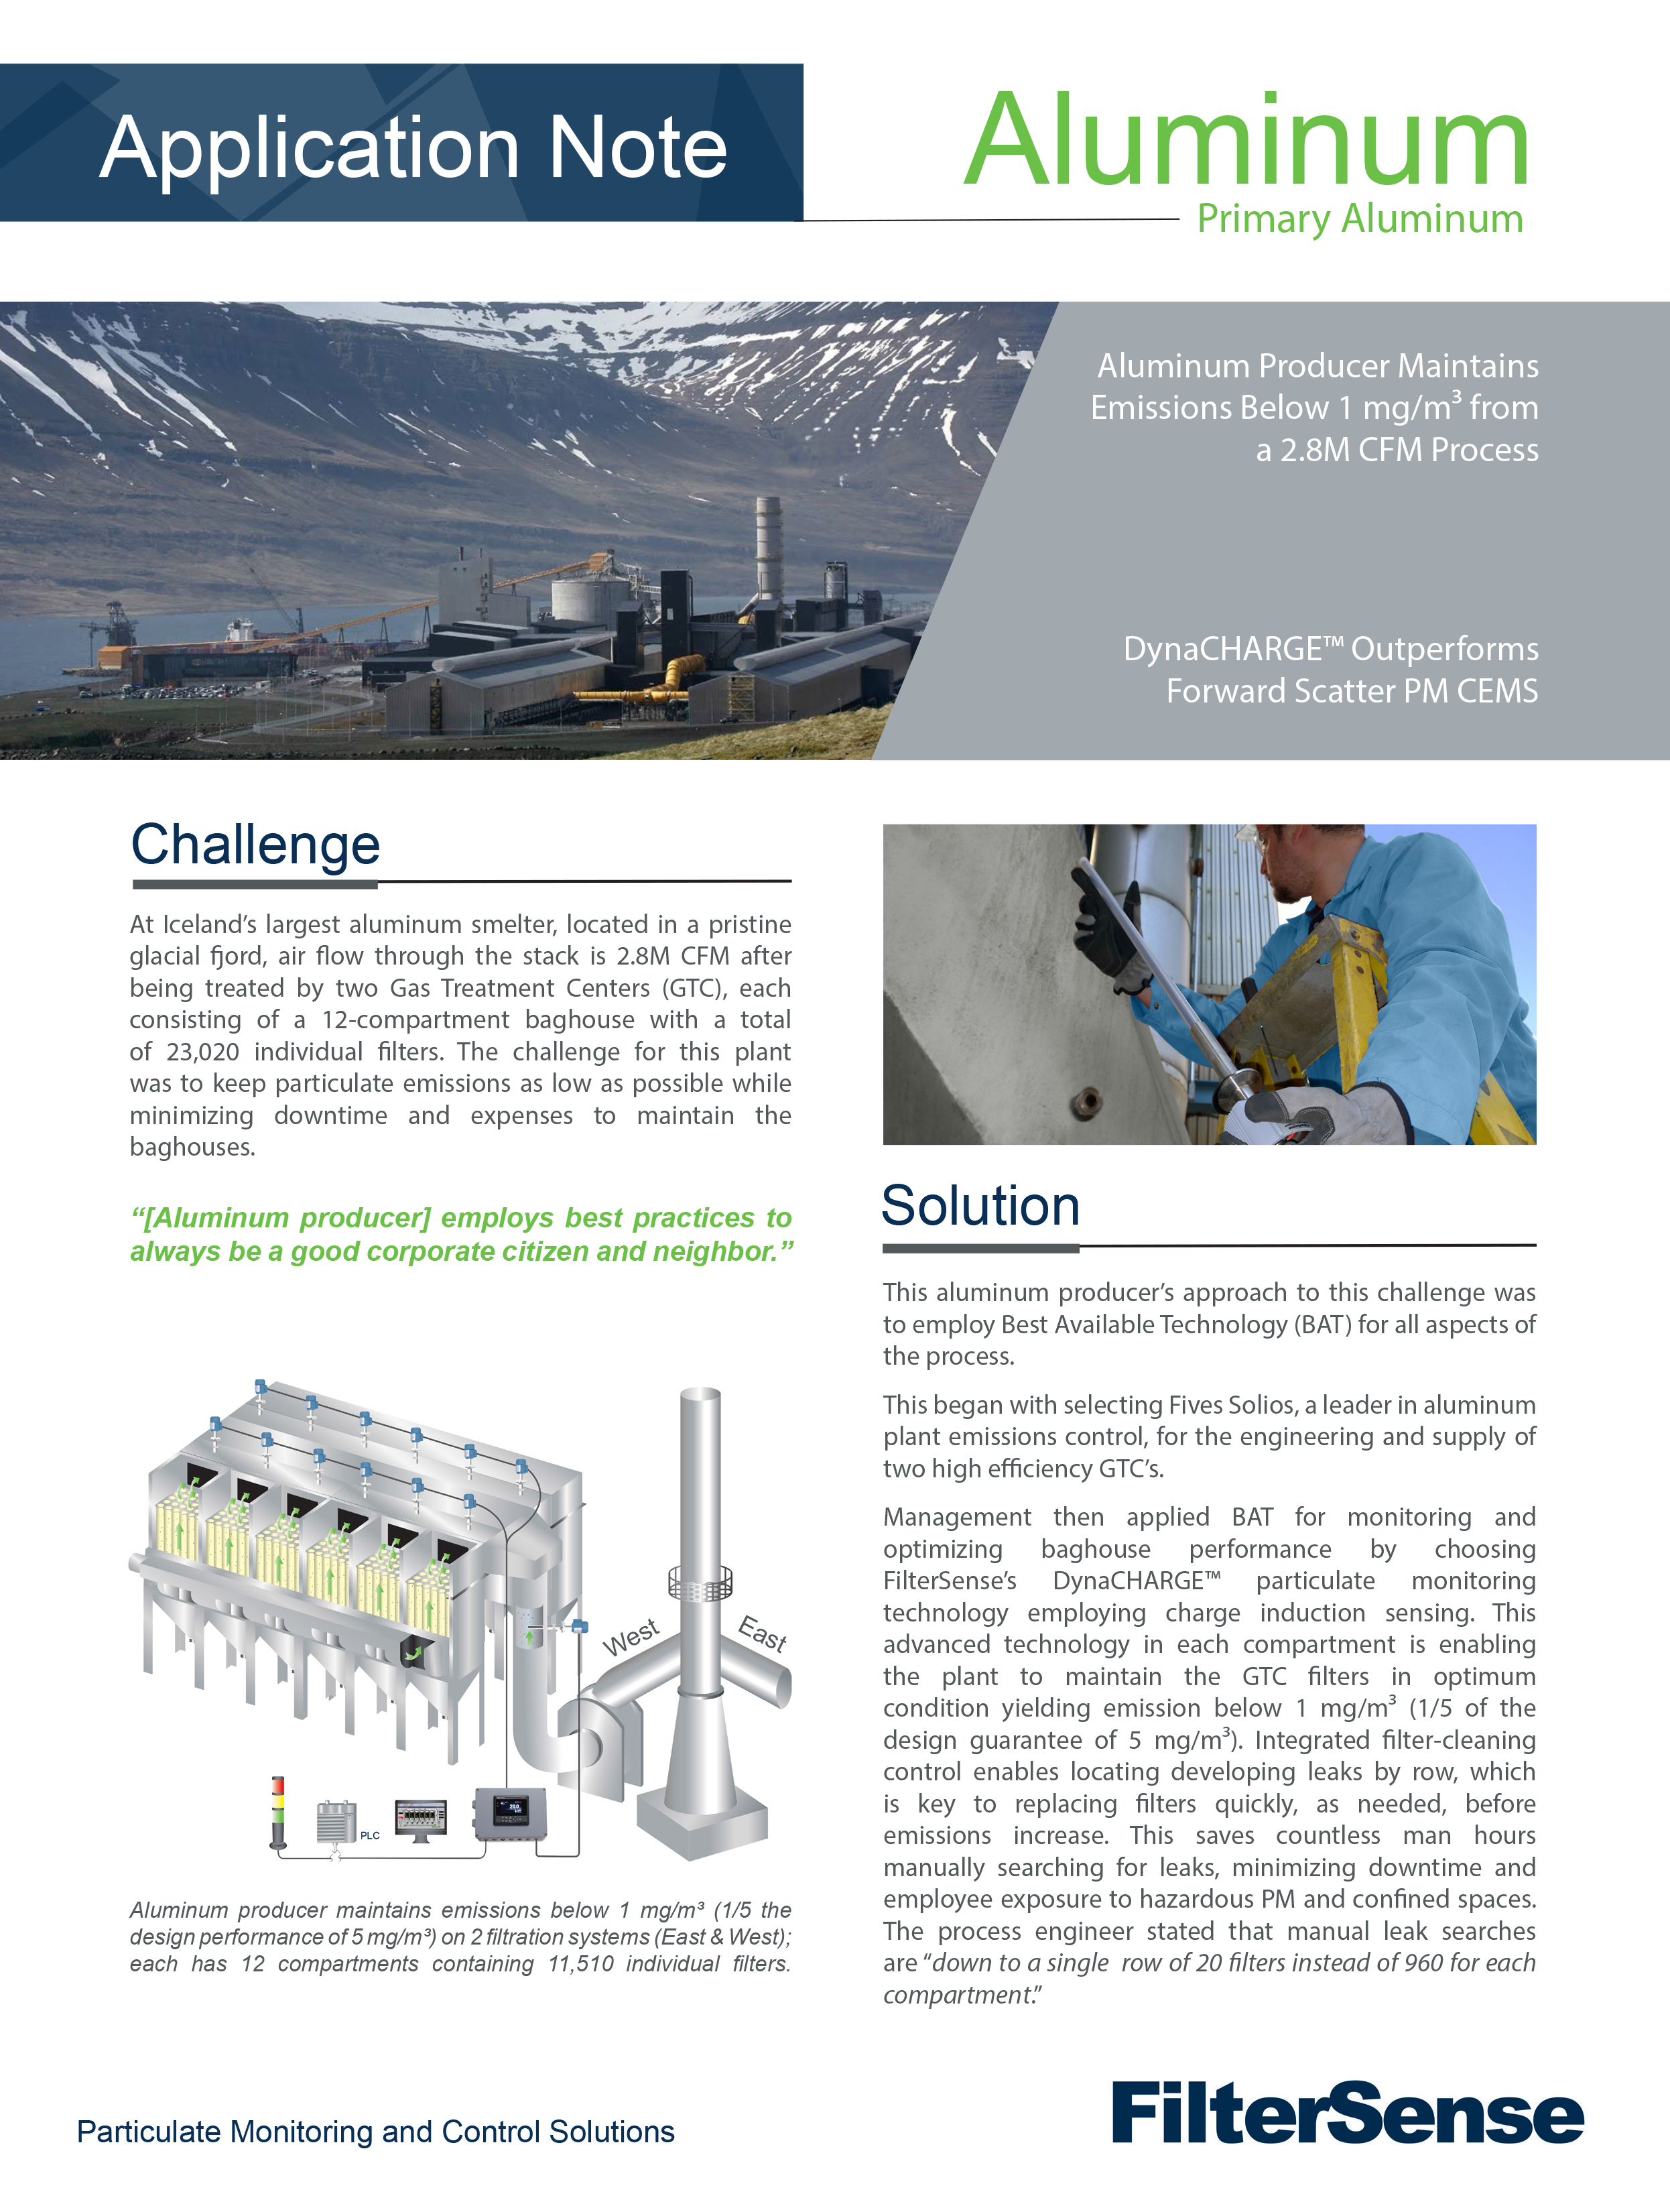 Alcoa Application Note Front